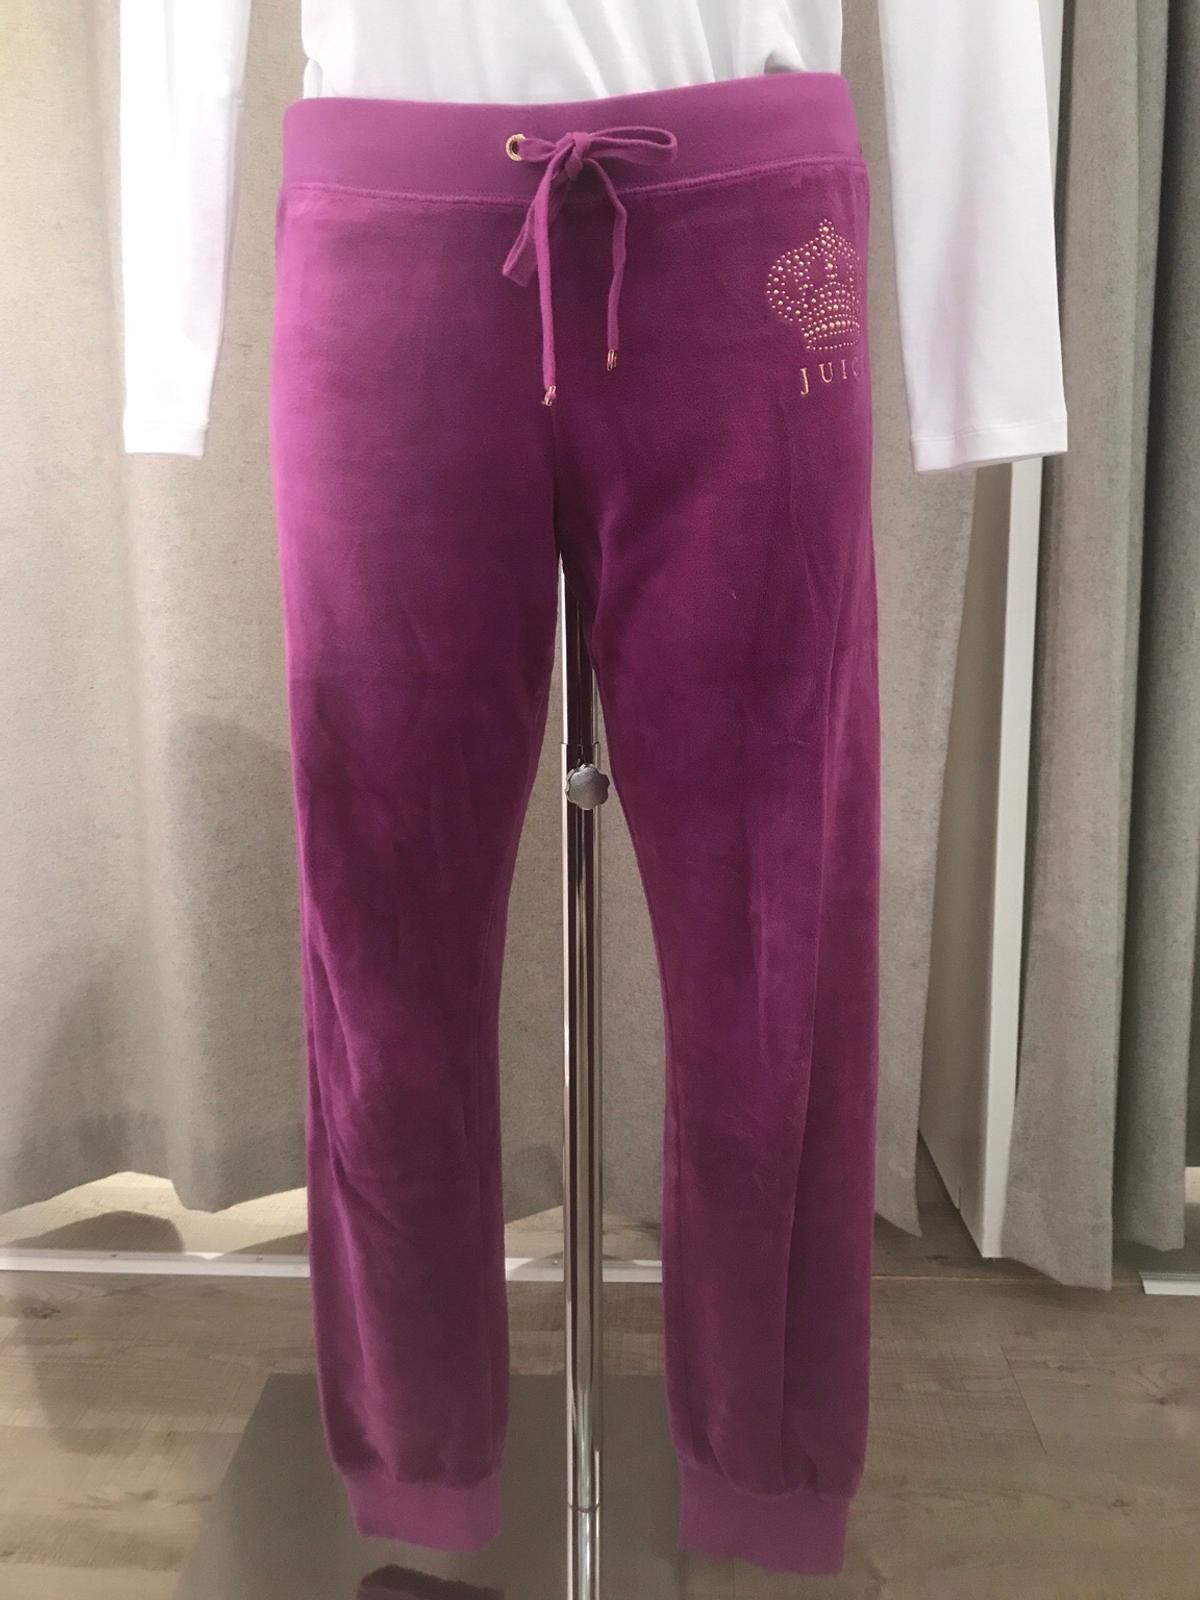 a67ed44b Juicy Couture kosebukse in 0267 Oslo for NOK 250.00 for sale - Shpock